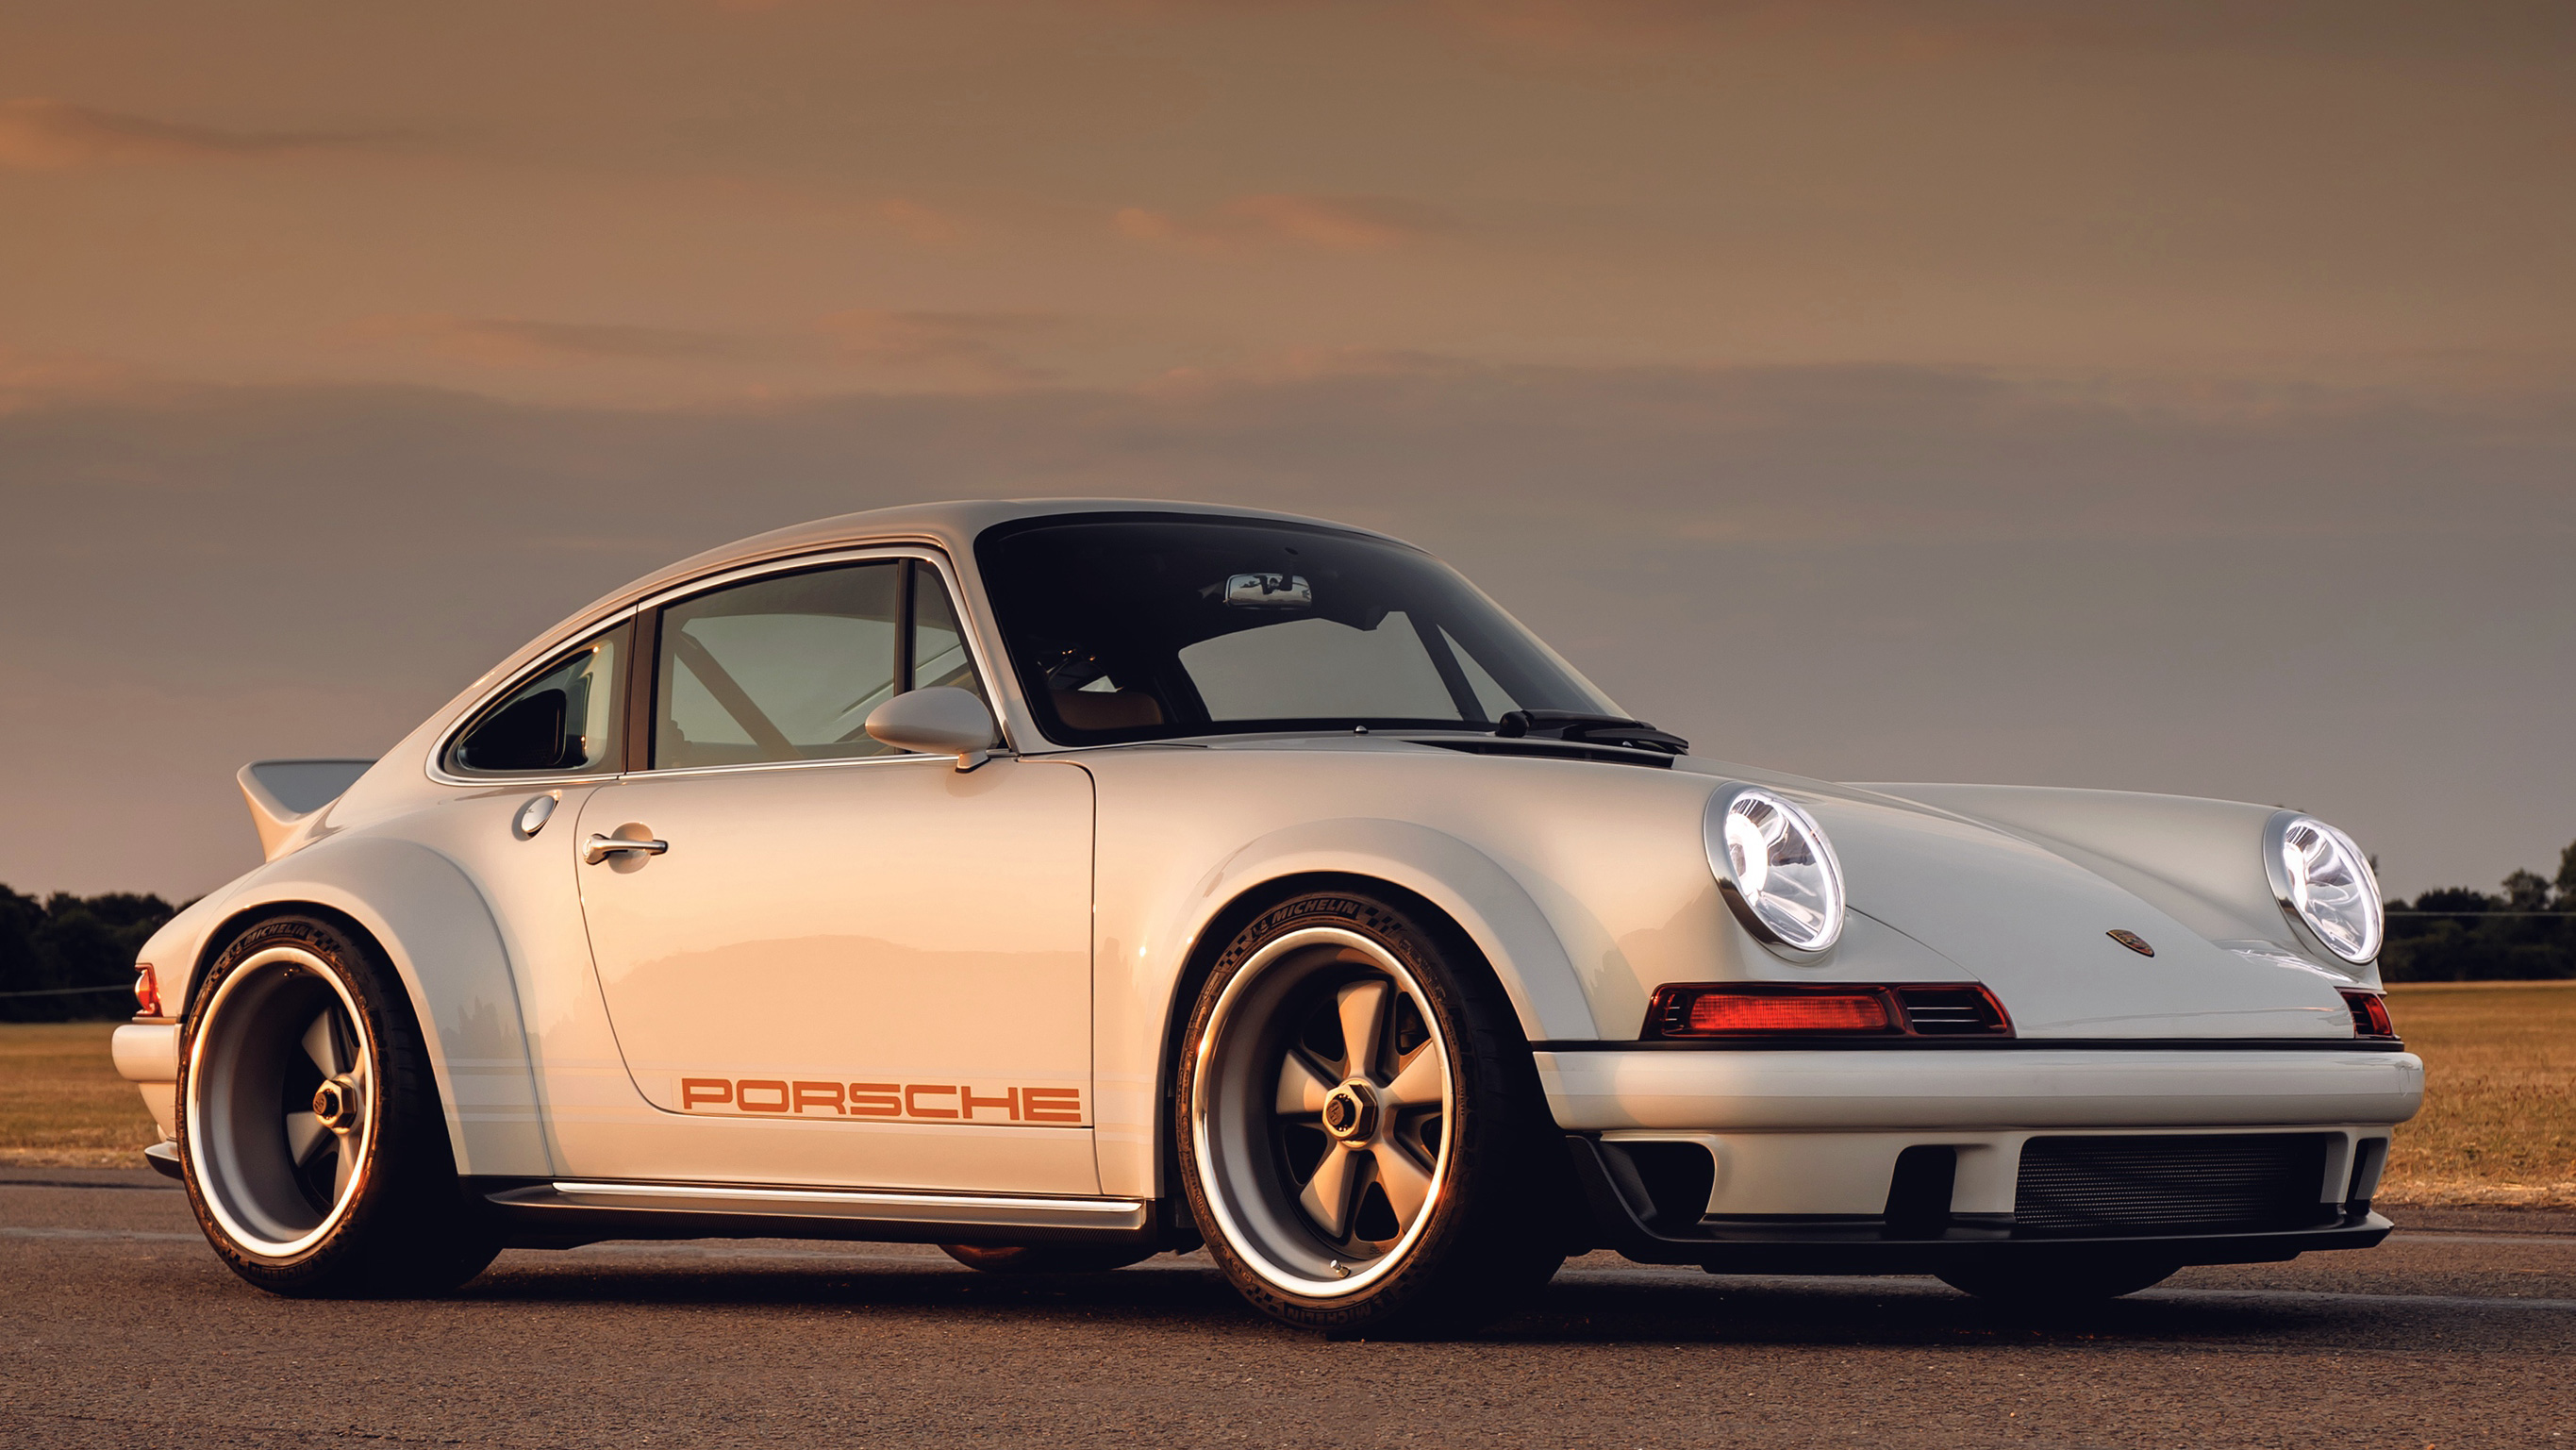 Porsche Hd Wallpapers 1080p: 1920x1080 Porsche Singer Vehicle Design DLS Laptop Full HD